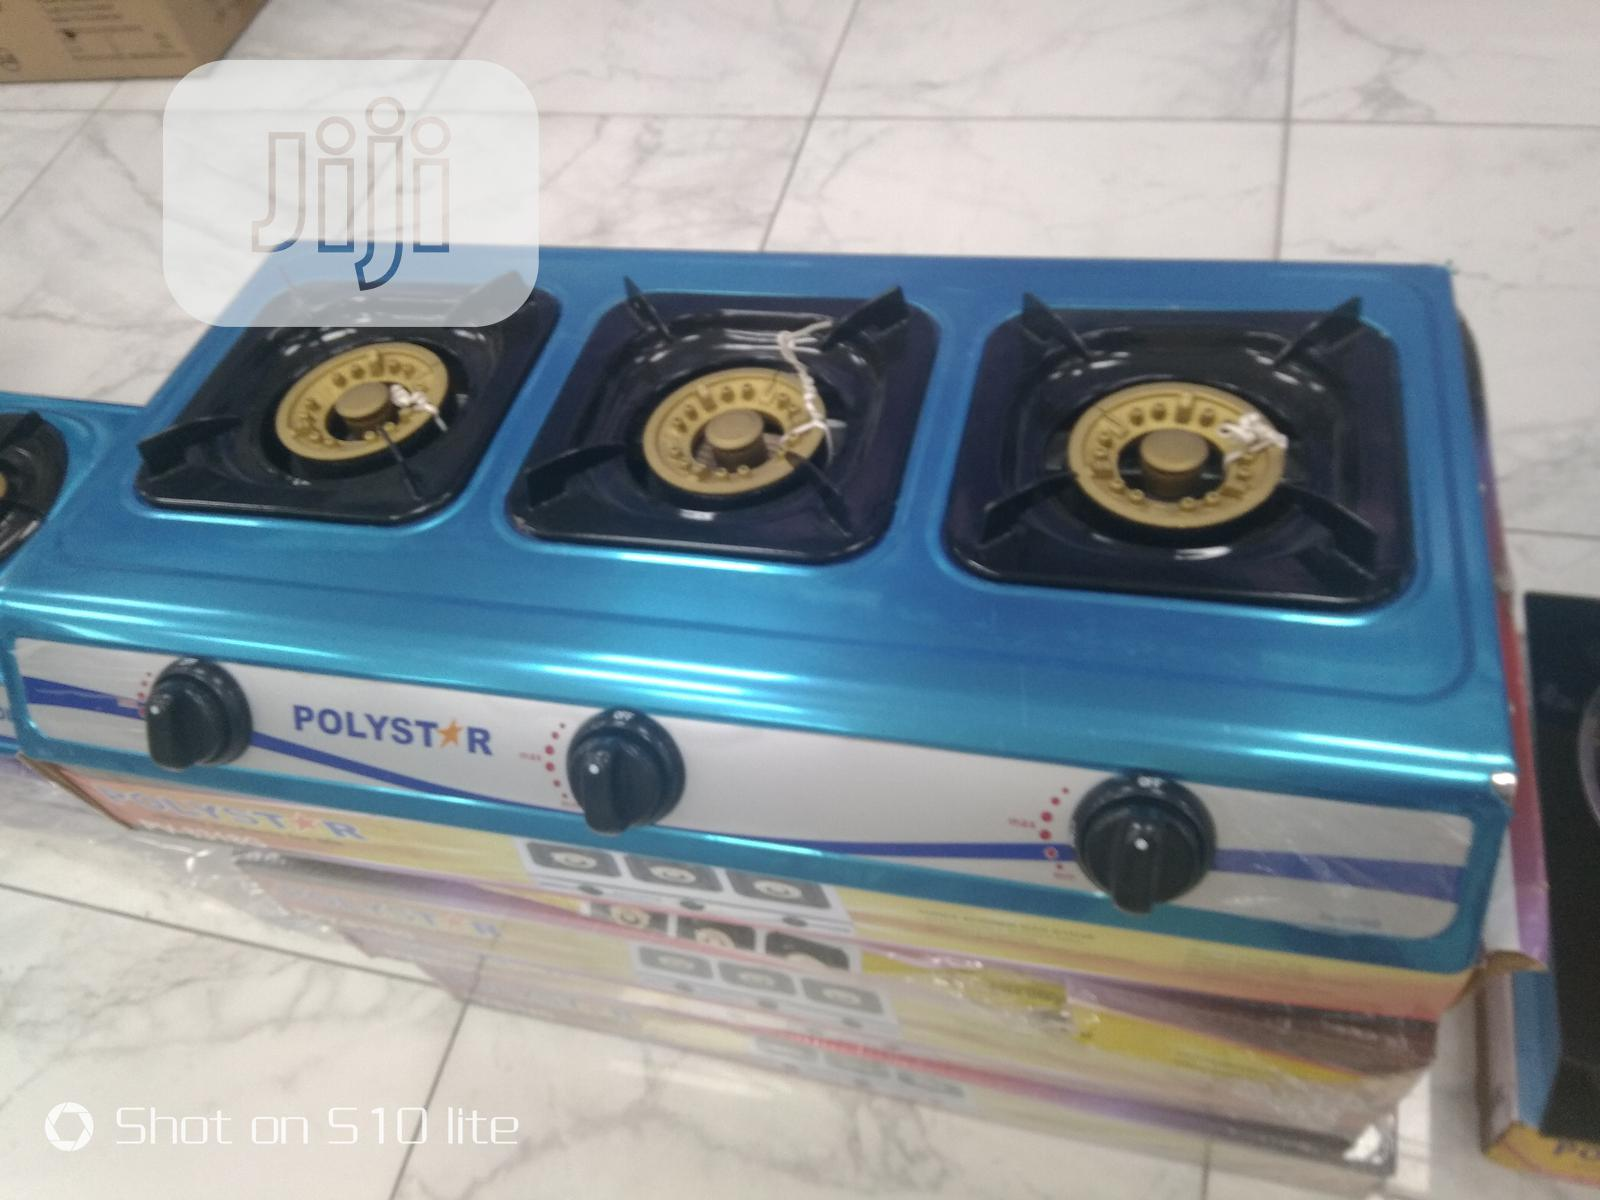 Archive: Polystar 3 Burner Table Gas Cooker With Stainless Steel Top Pv-8318g